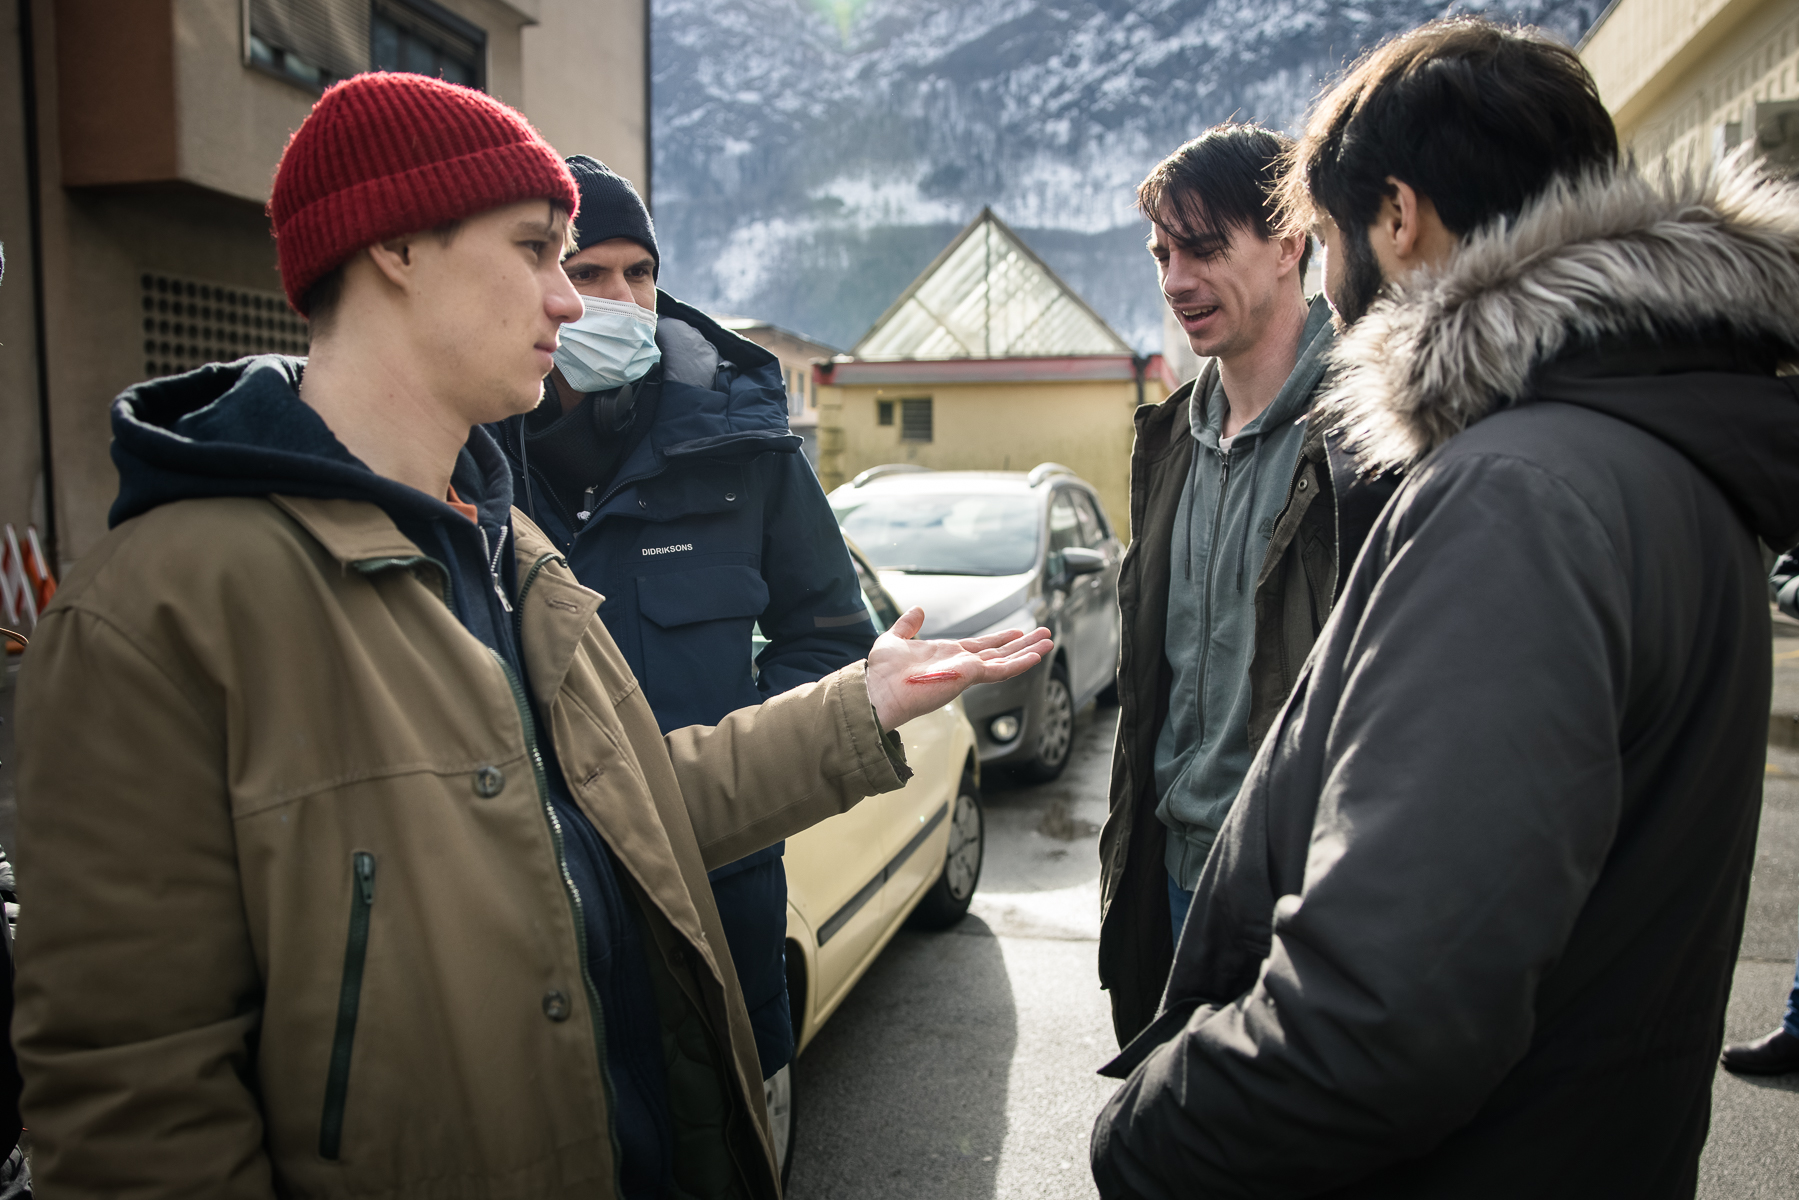 Actor Timon Šturbej showing special effects makeup to director Marko Šantić and actors Jure Henigman and Benjamin Krnetić on the set of Wake Me.